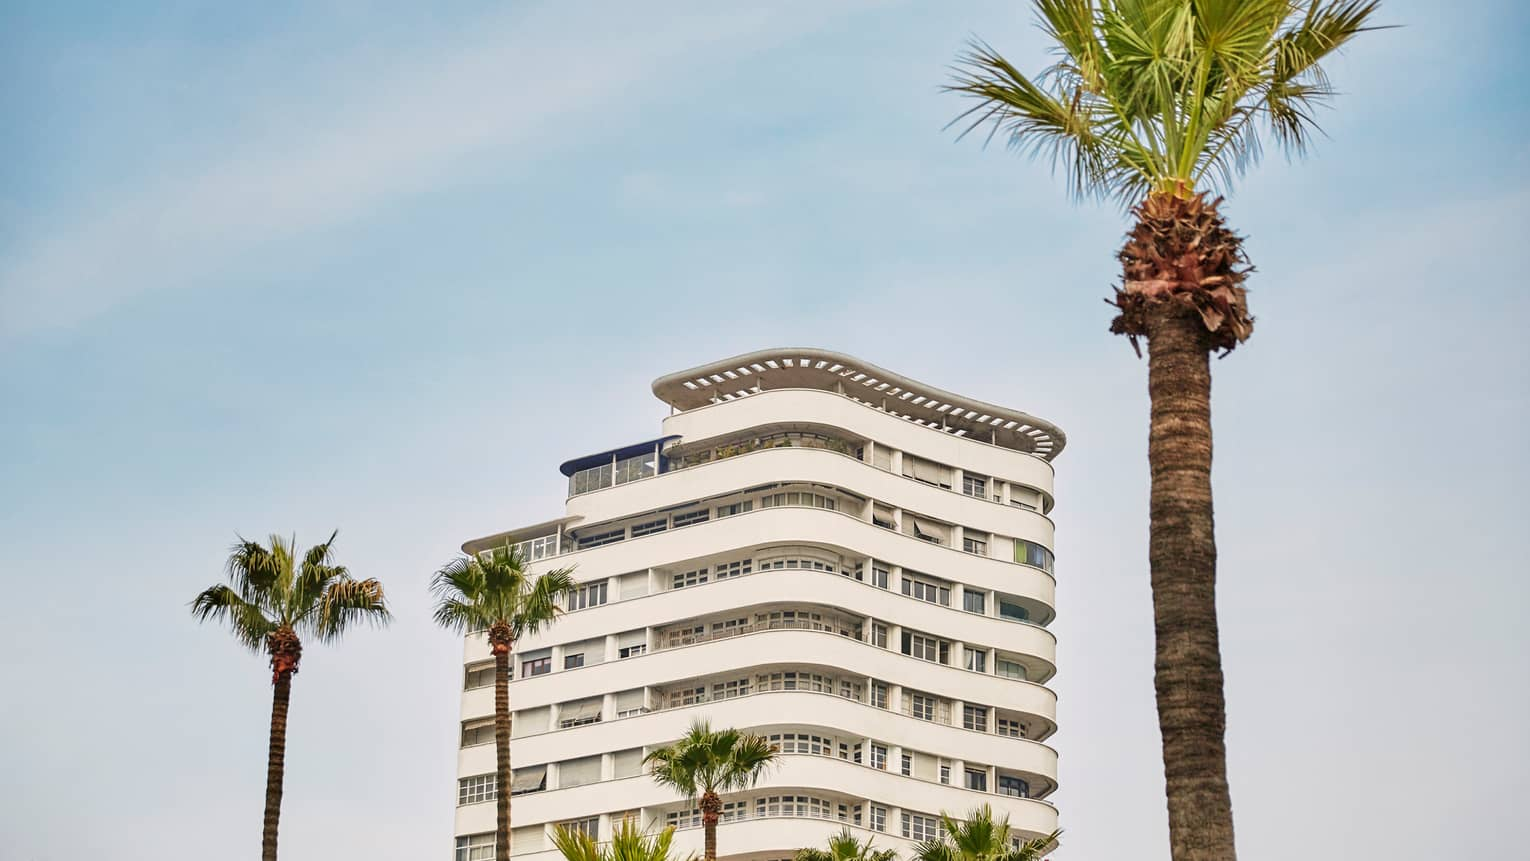 Luxury hotel in casablanca 5 star four seasons hotel casablanca